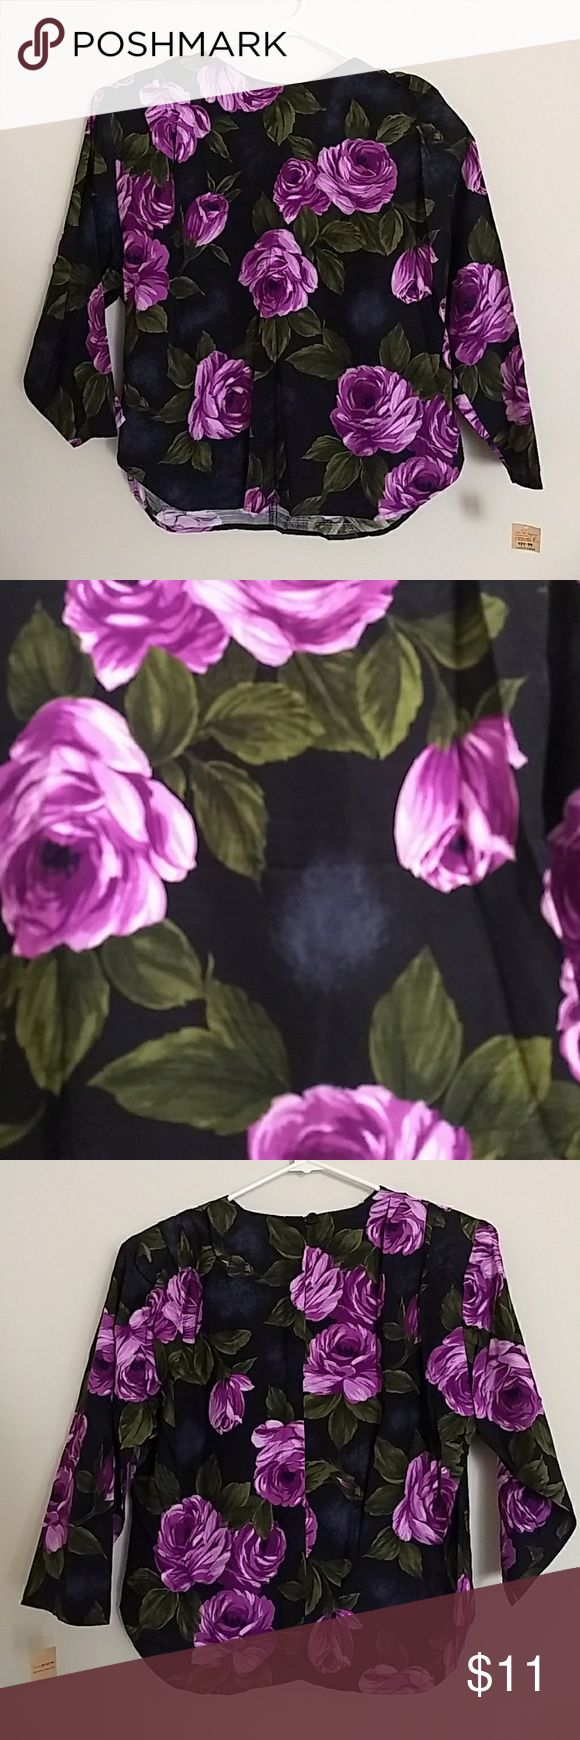 "Vintage Floral Roses Blouse 100% Rayon. NWT by Melrose. This blouse is reminiscent of BJ Punk Label. It features shoulder pads (easily removable if you don't prefer them!) and quarter sleeves. Measurements: 17.75"" sleeve. 20"" seat. 22.25"" length. 22"" bust. I've had this item in storage for quite some time, so it needs laundering! One small hole at shoulder, pictured. Price reflects this. Vintage Tops Blouses"